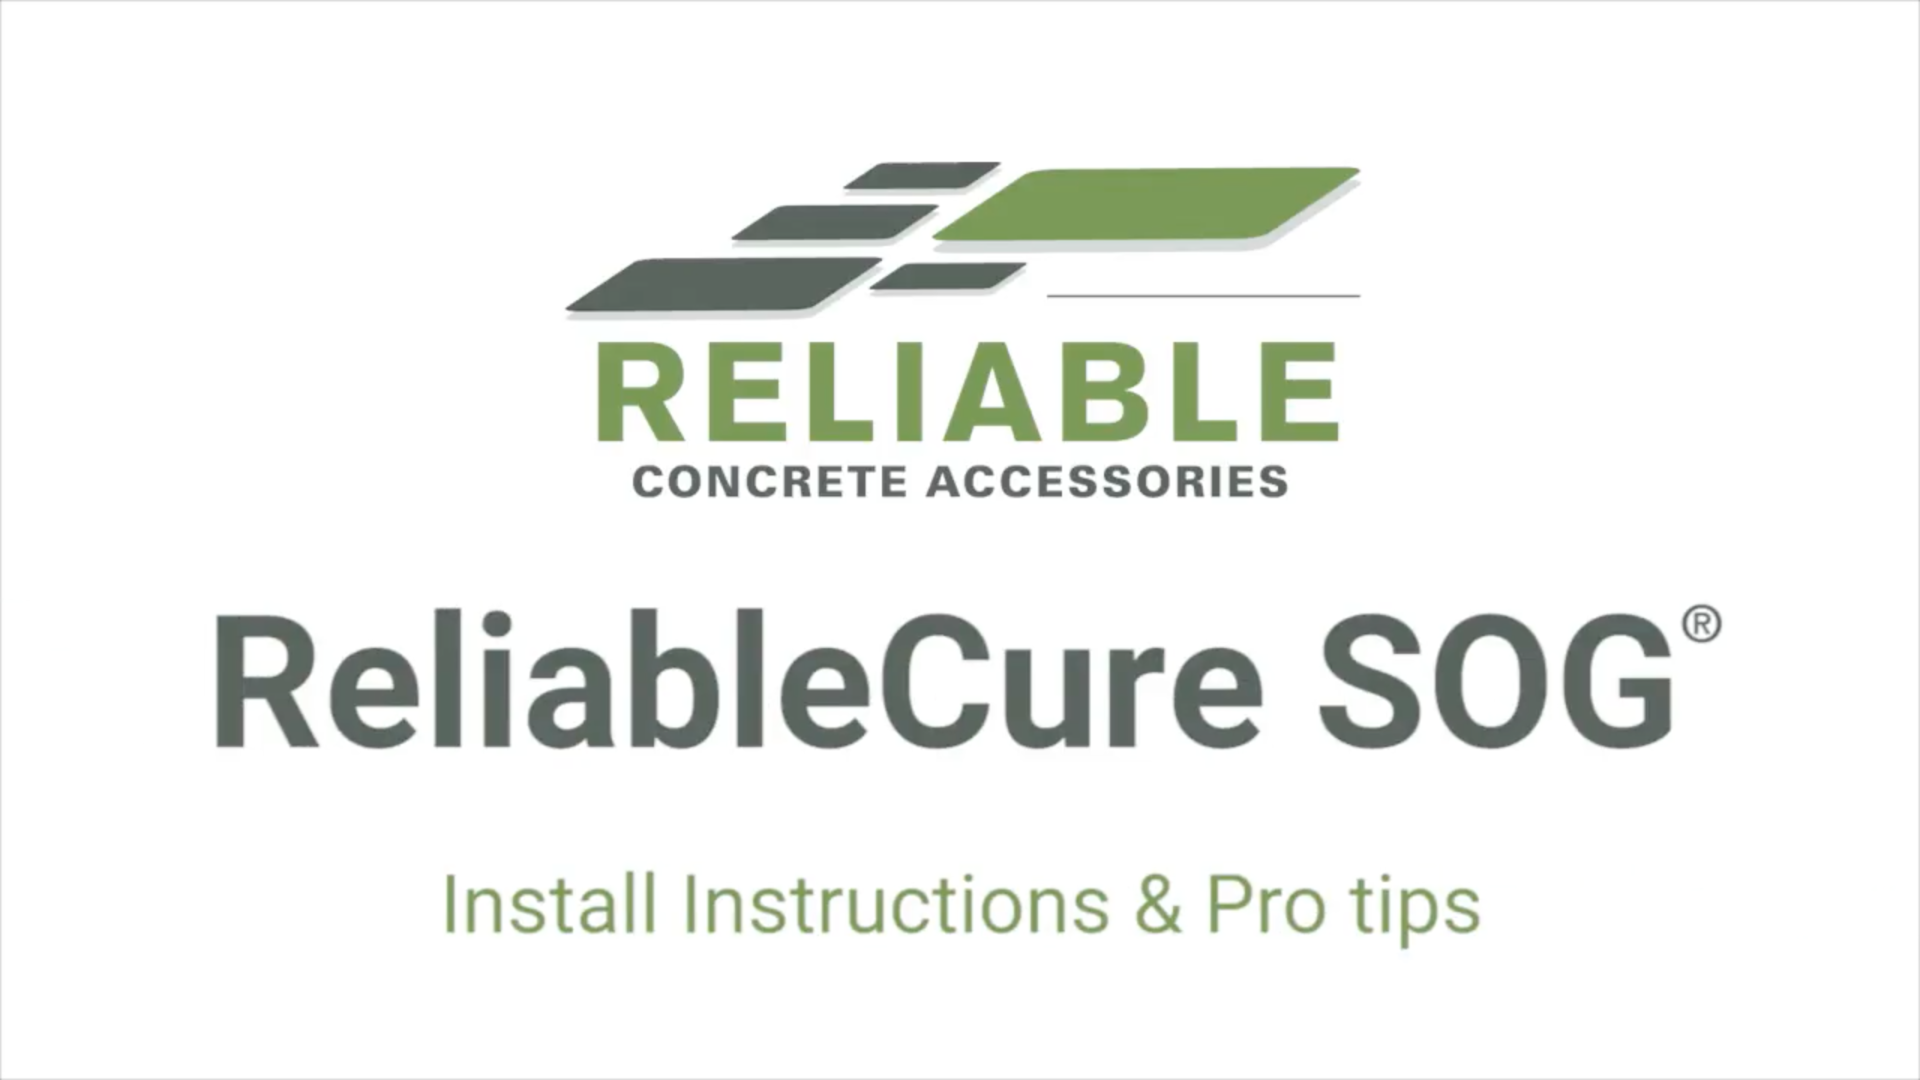 ReliableCure SOG Install Instructions & Pro tips